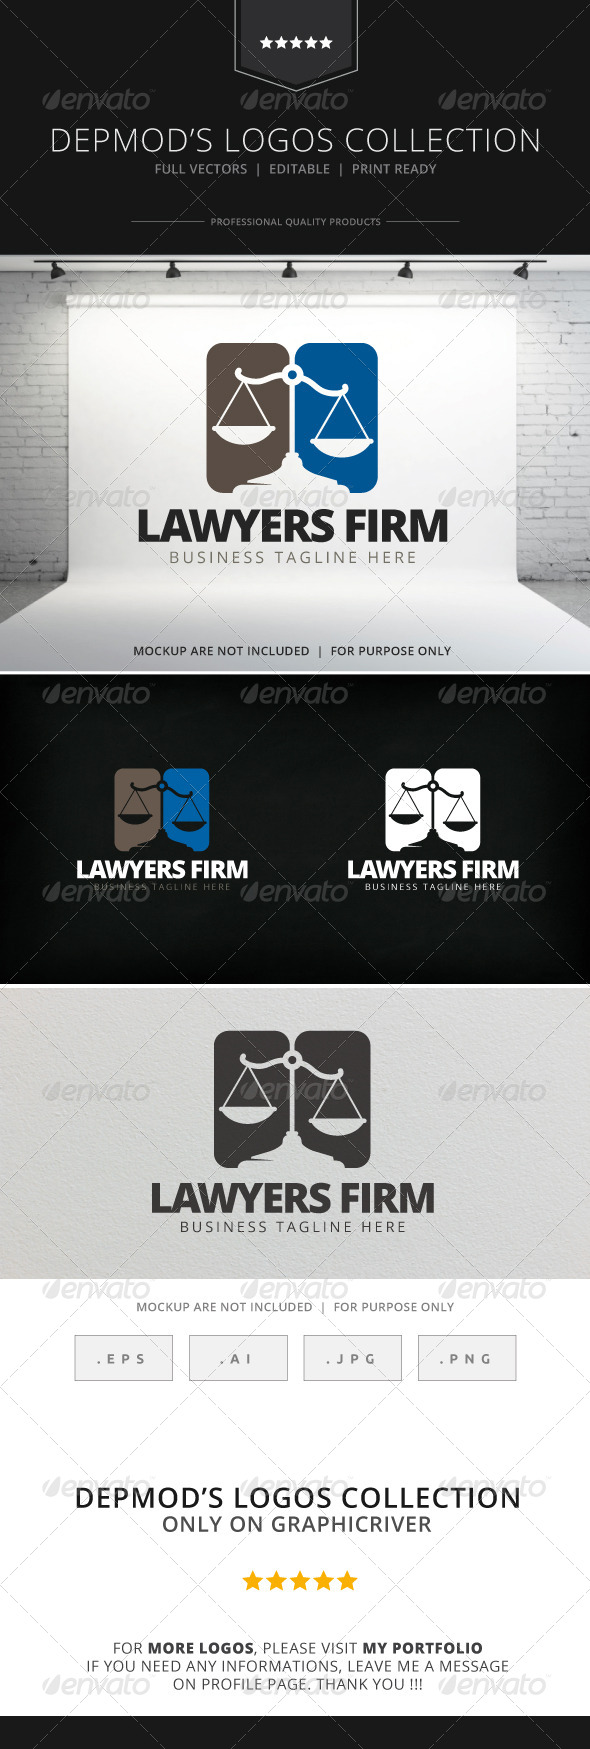 GraphicRiver Lawyer Firm Logo 7771247